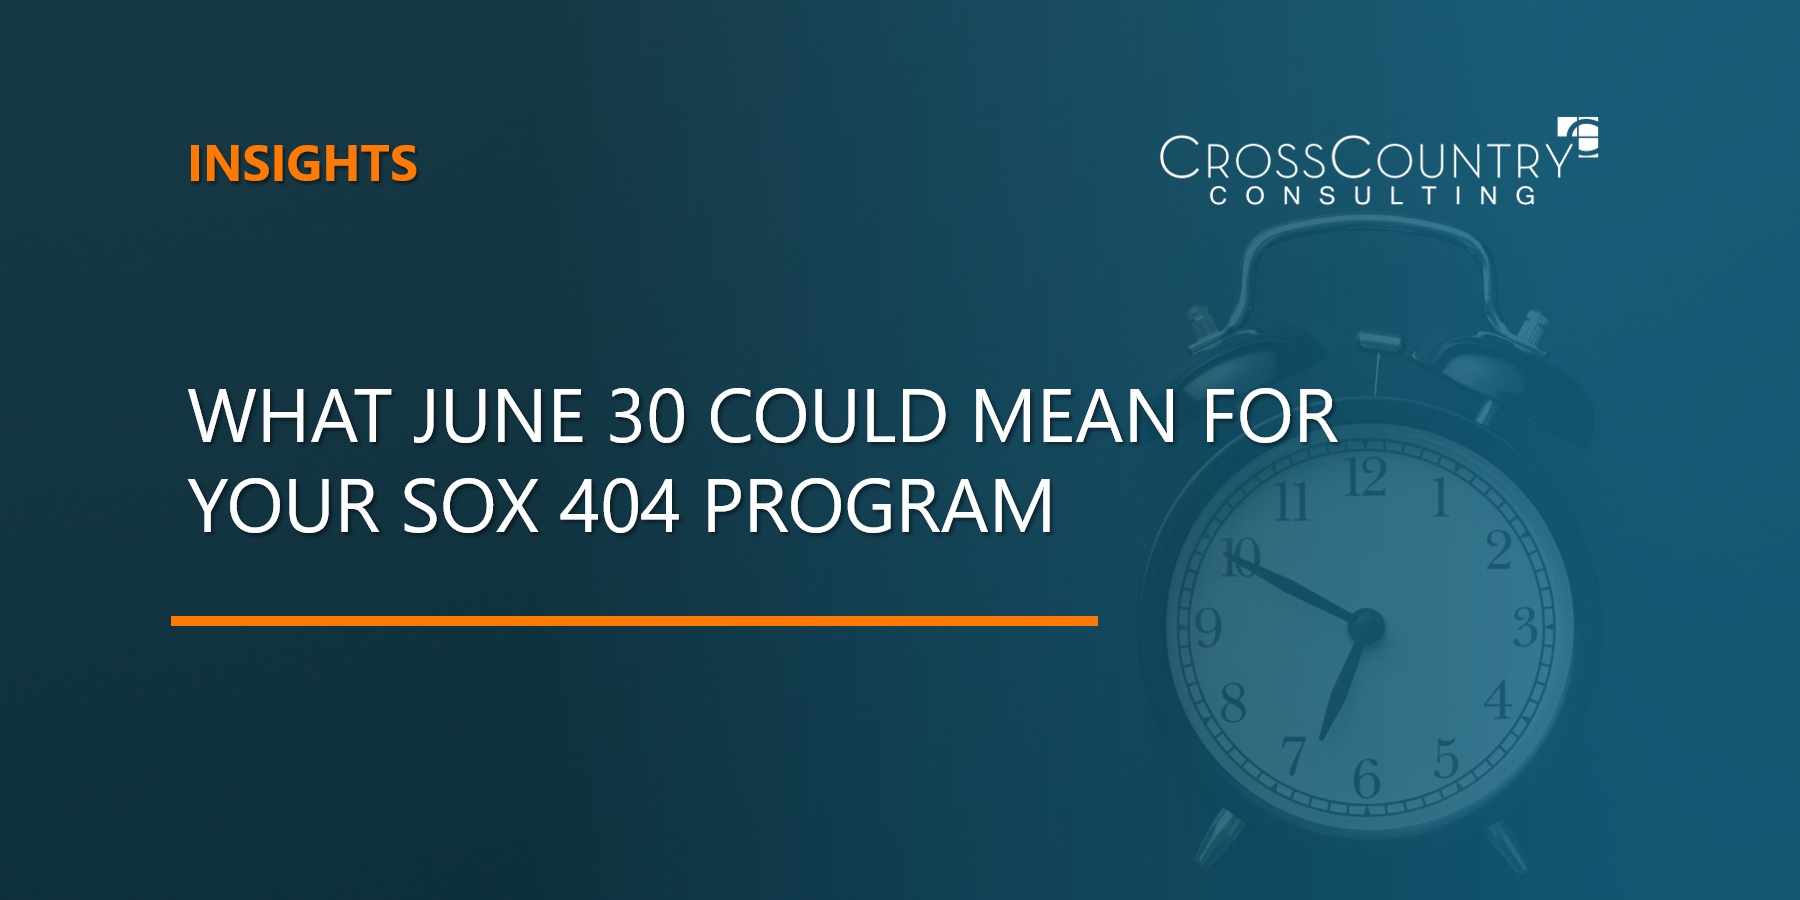 What June 30 Could Mean for Your SOX 404 Program